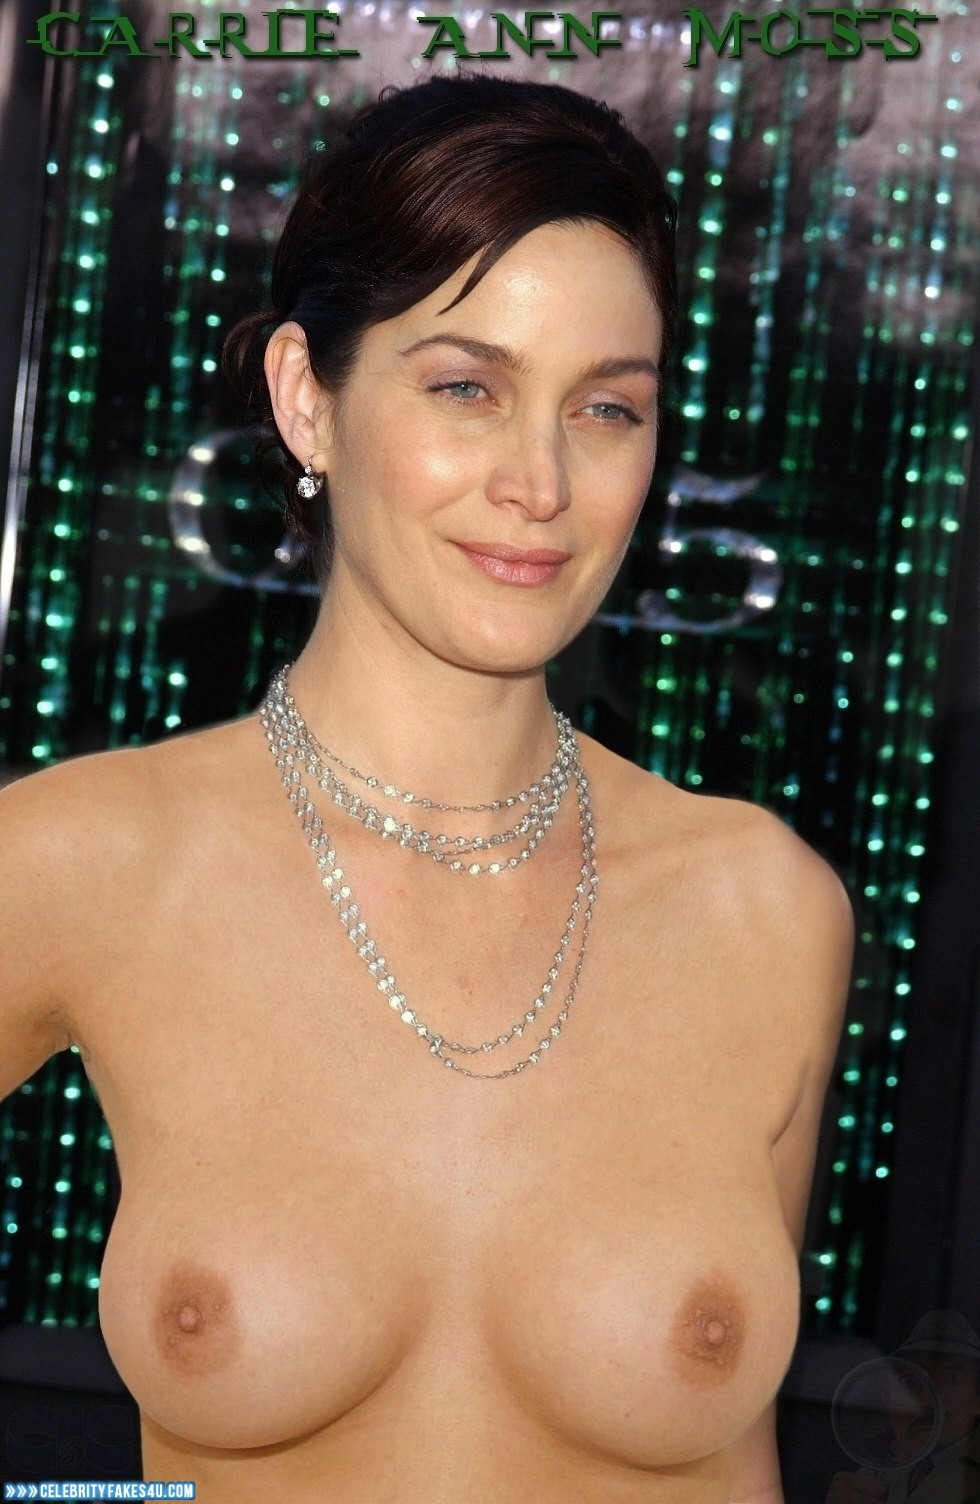 Carrie anne moss pussy